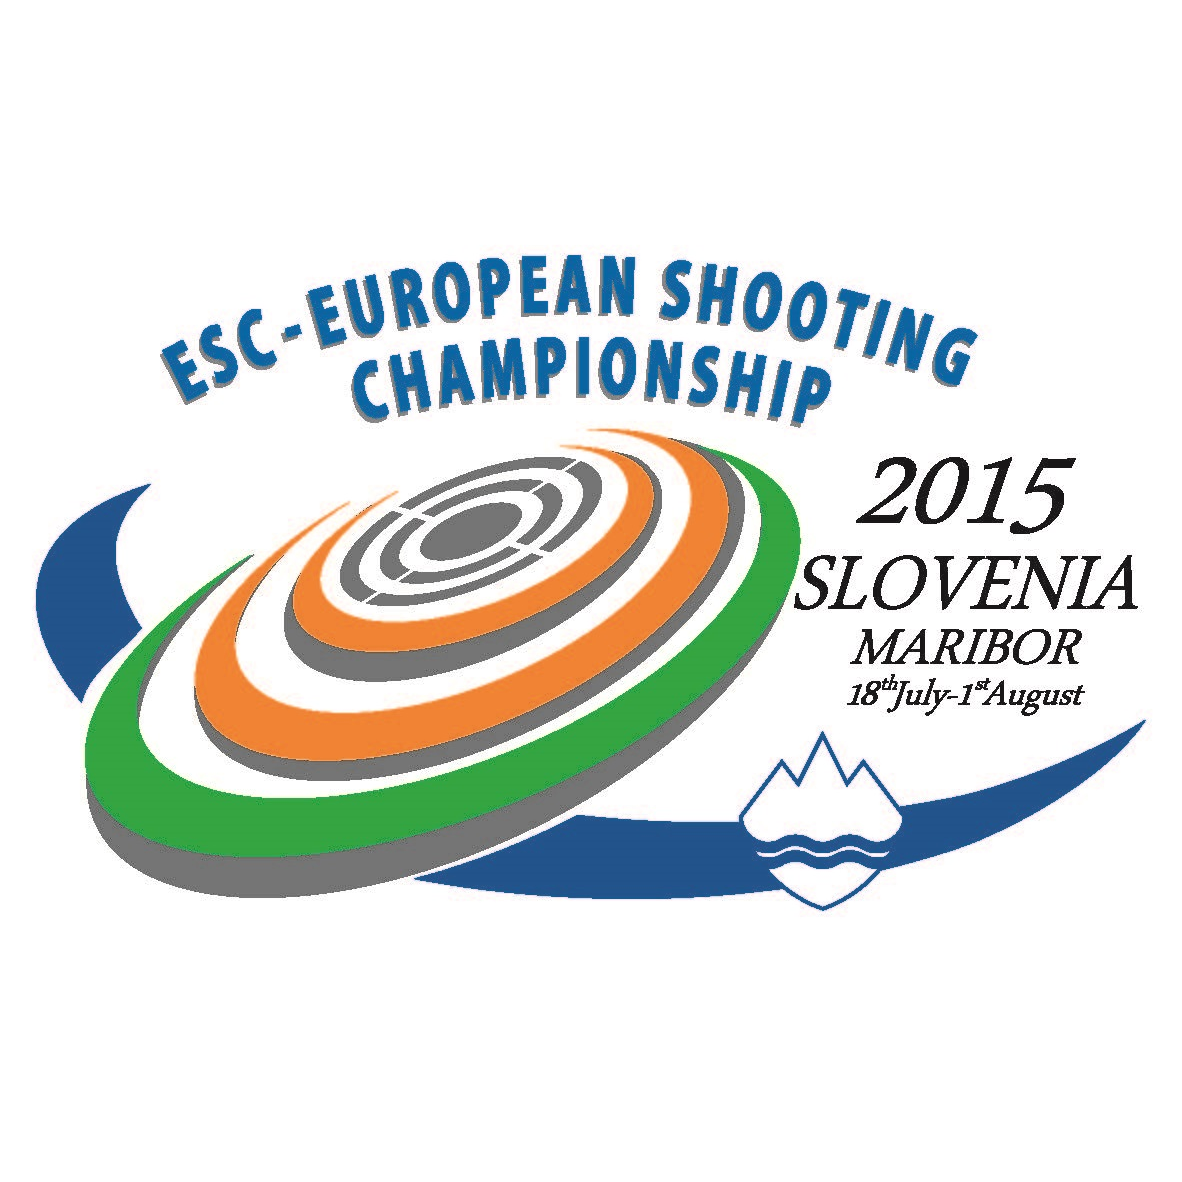 2015 European Shooting Championships